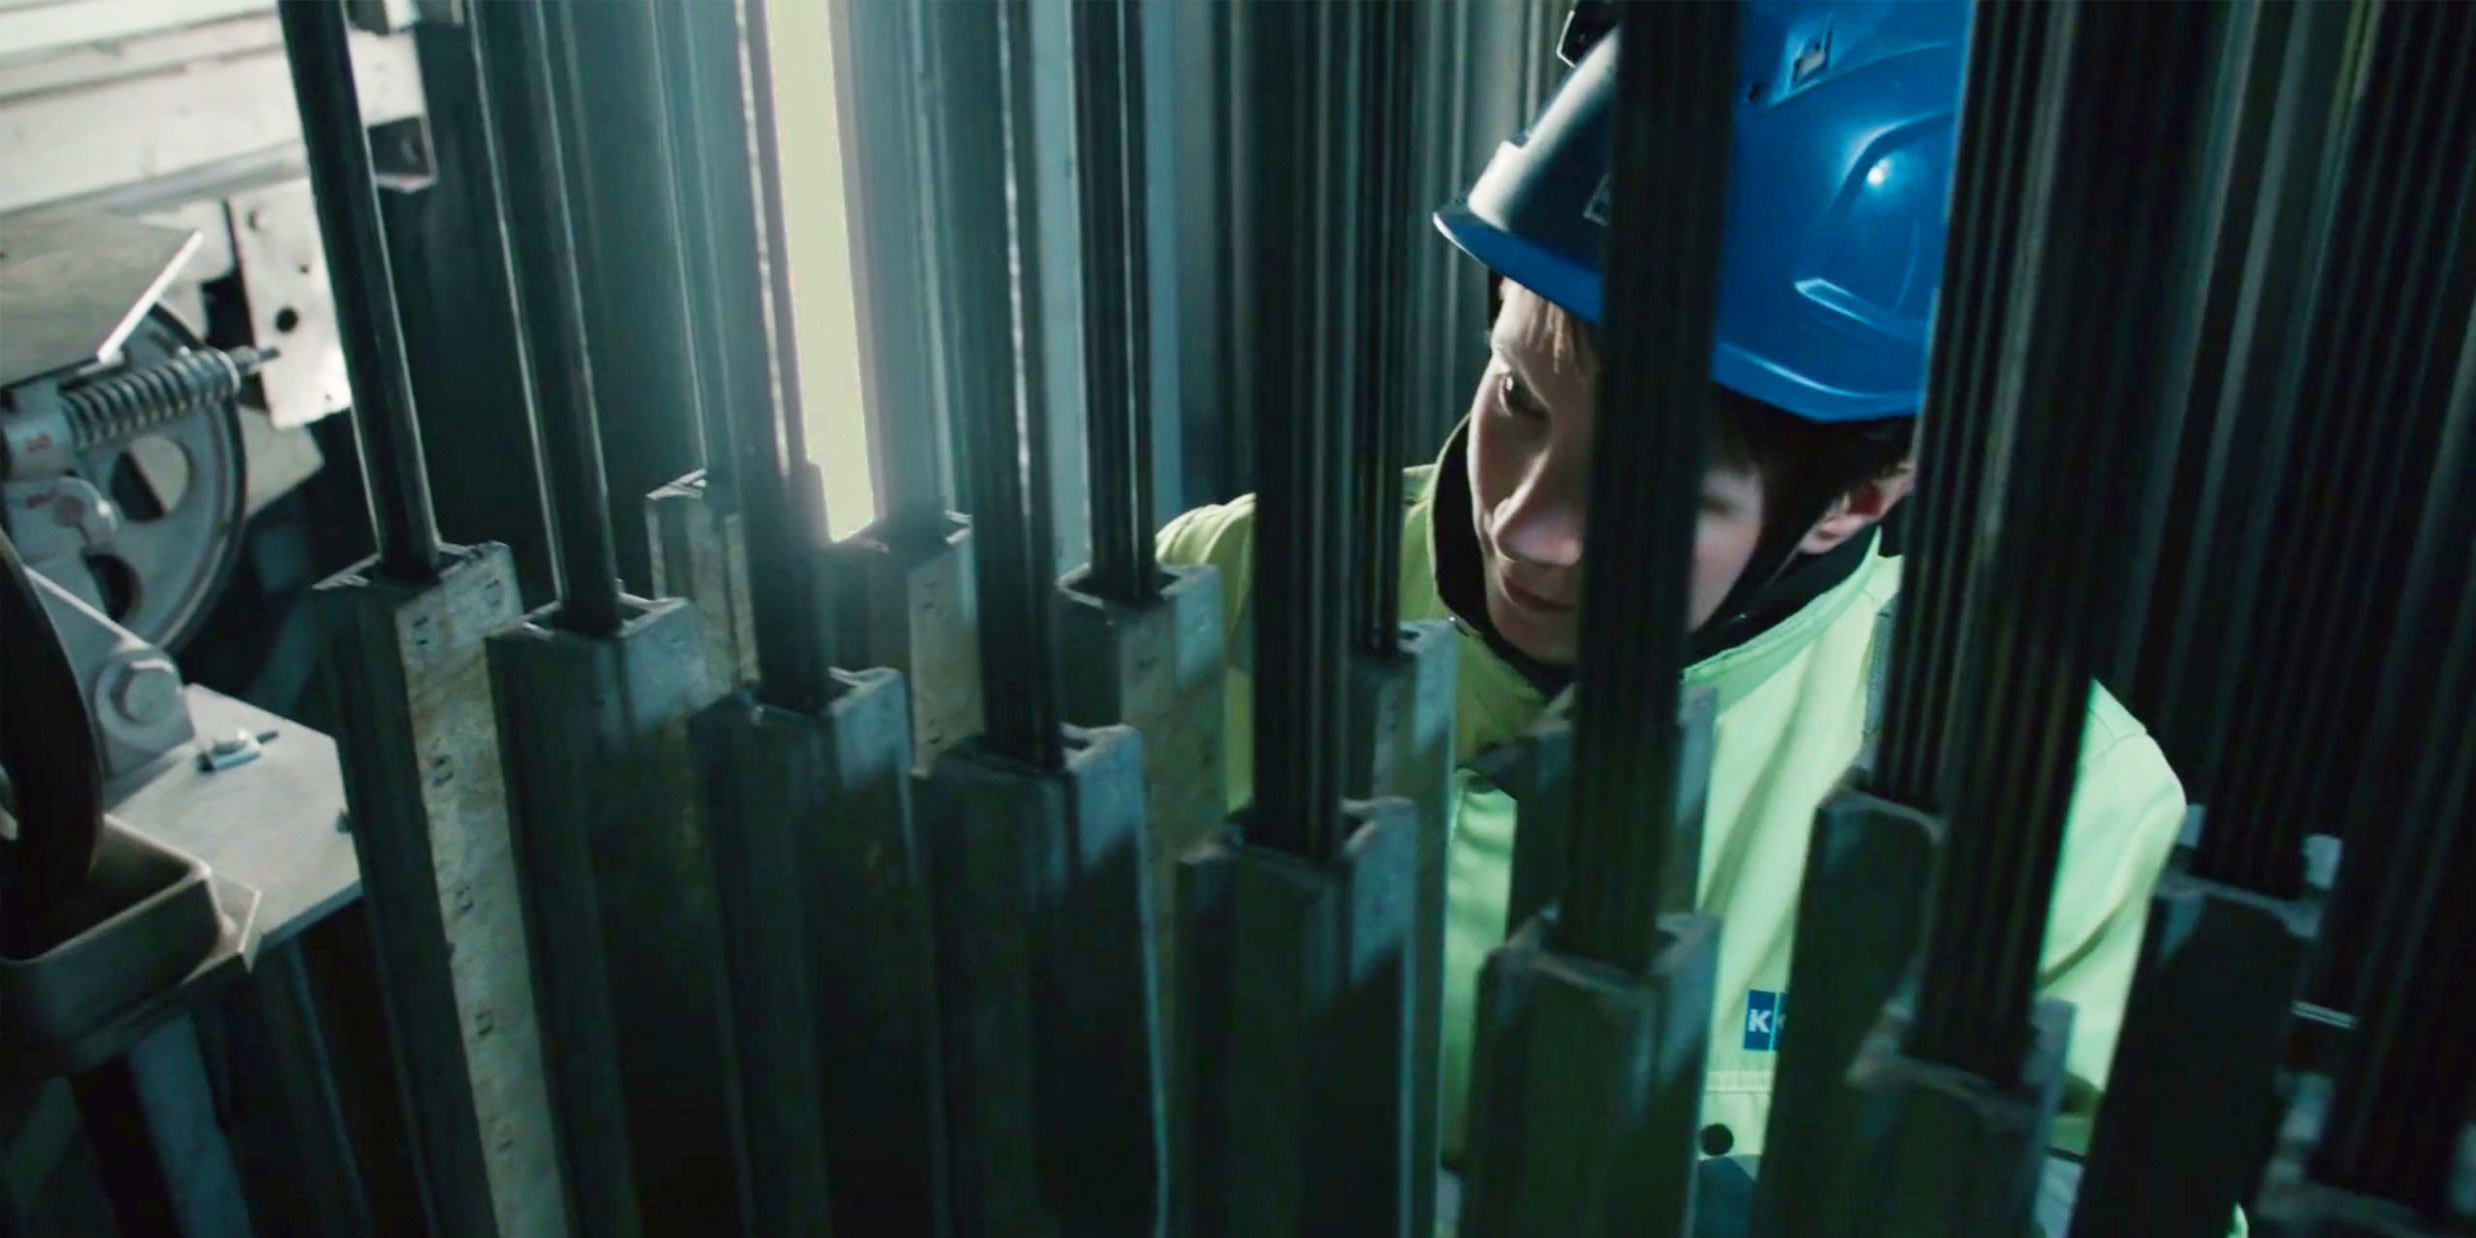 Worker wearing security equipment working with iron bars